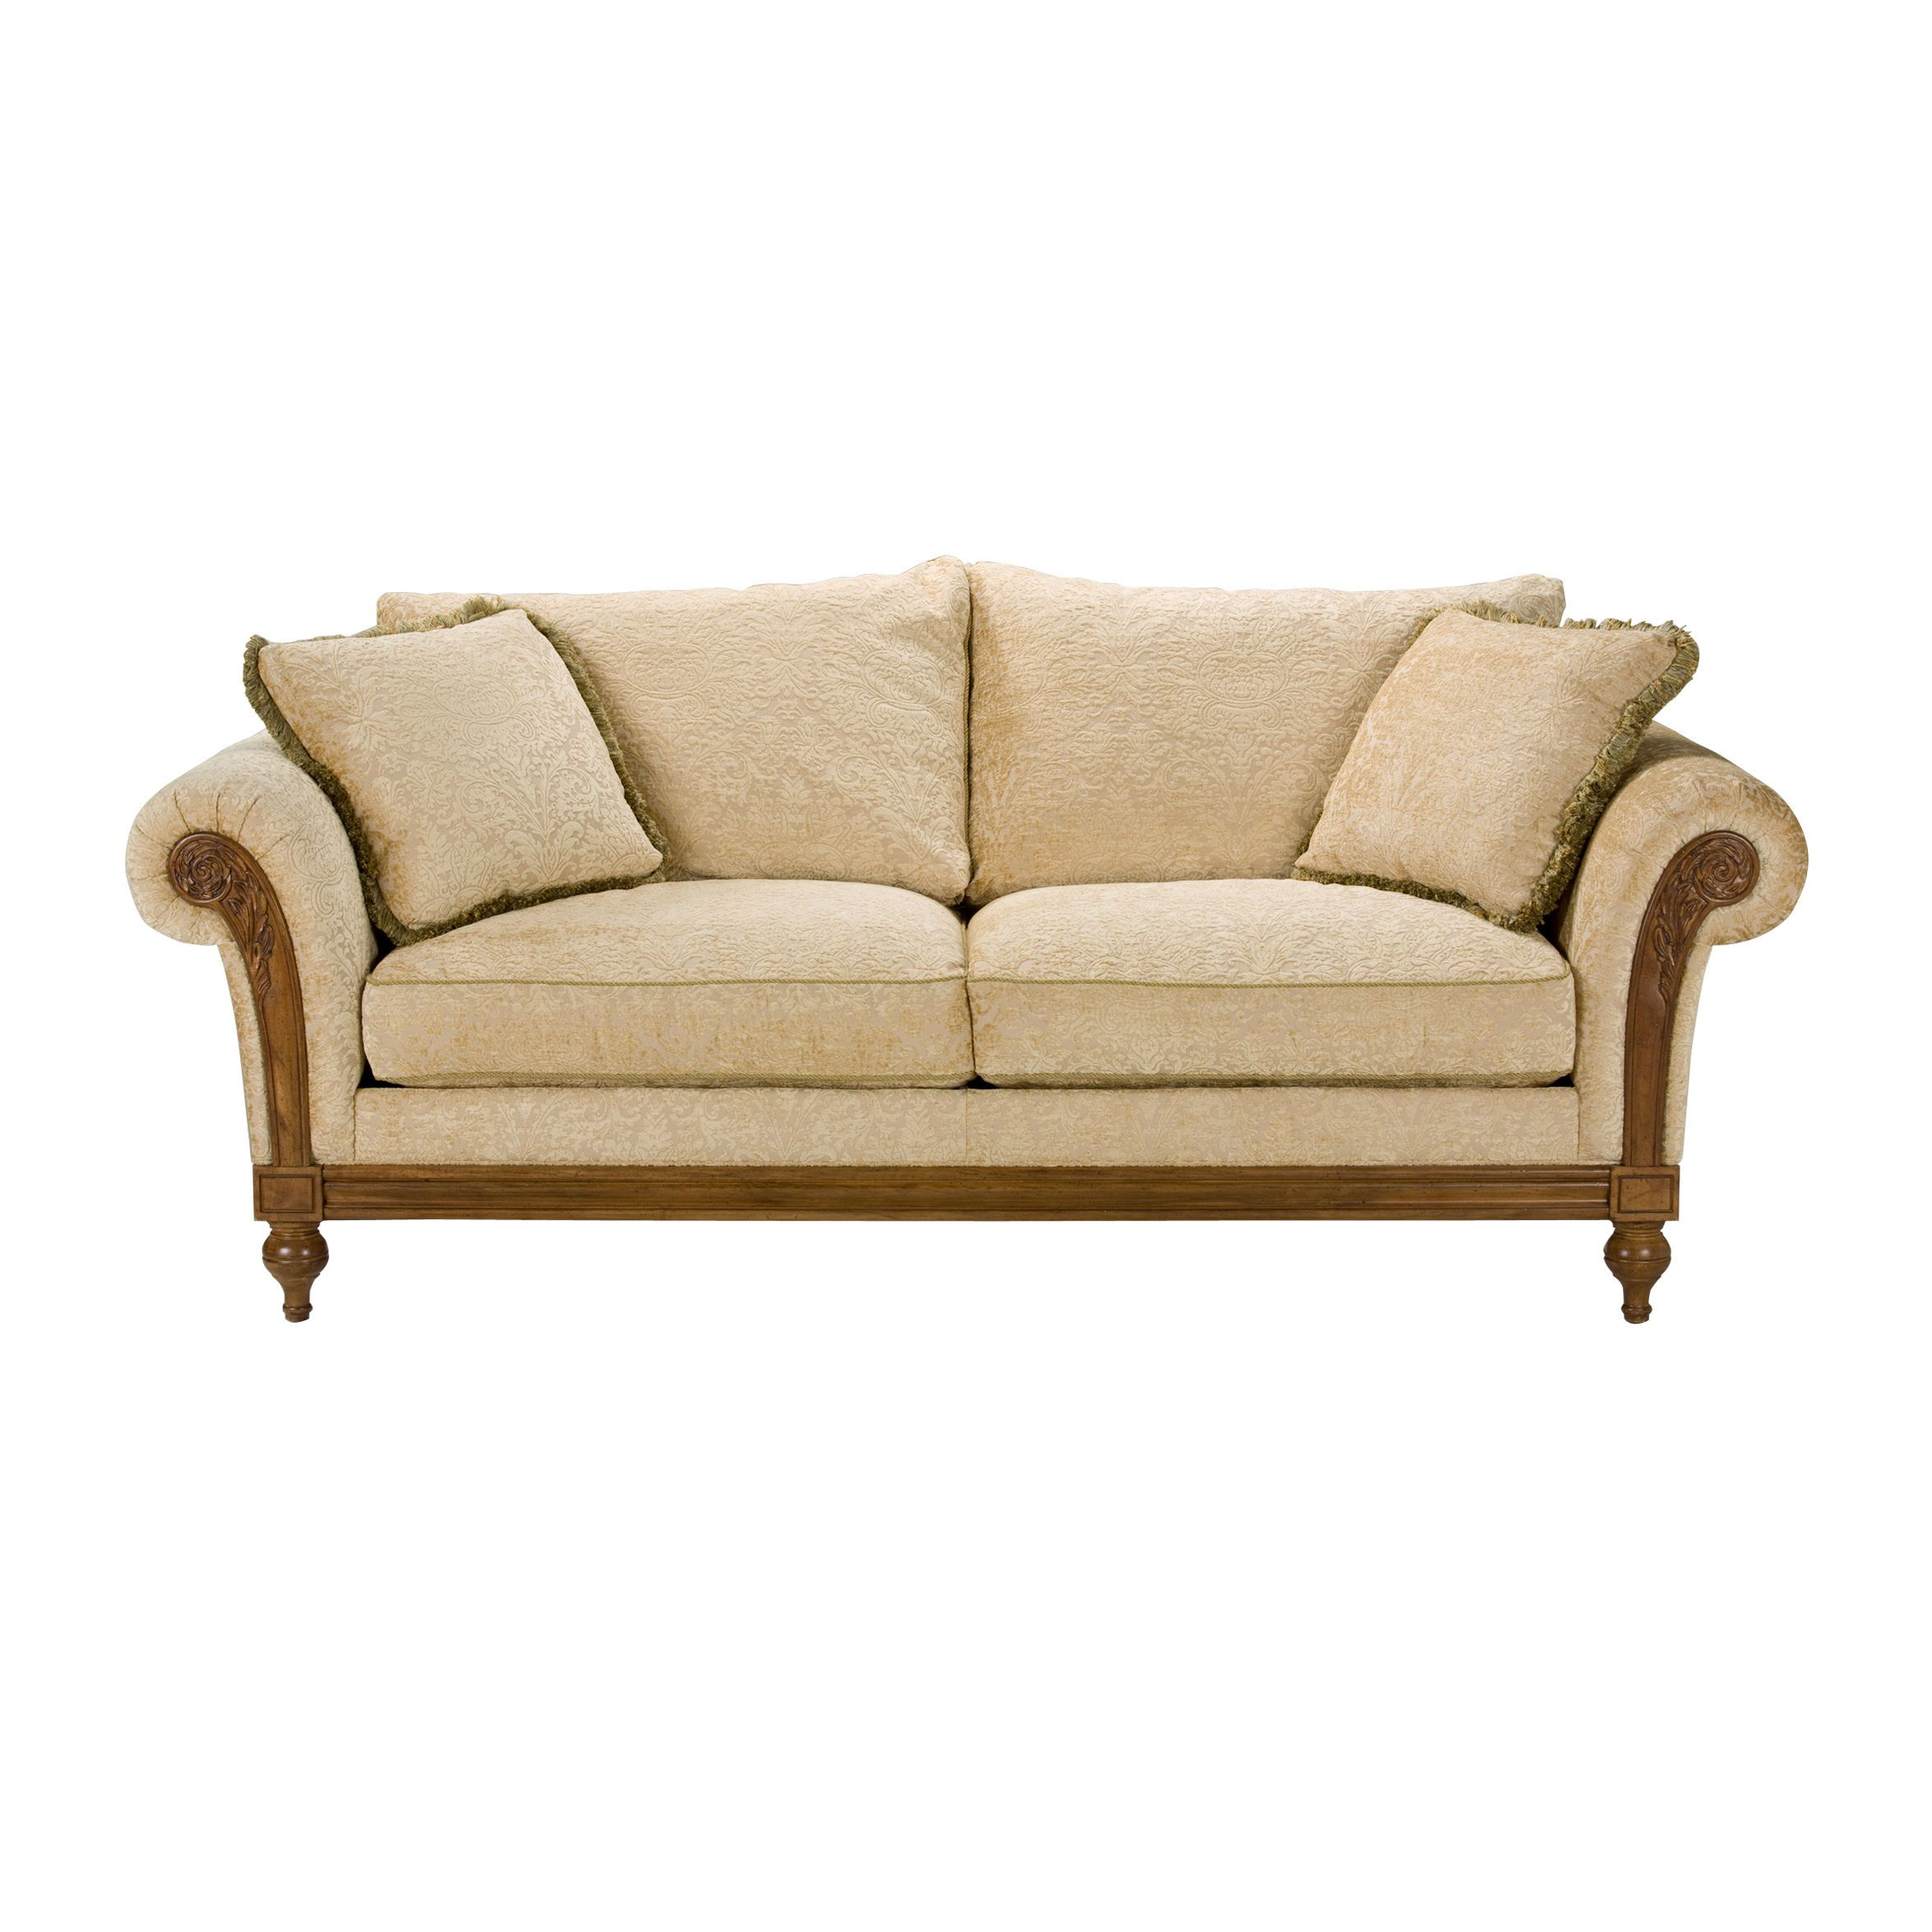 I Love This One But They Don T Have A Loveseat Pratt Sofa Ethan Allen Us